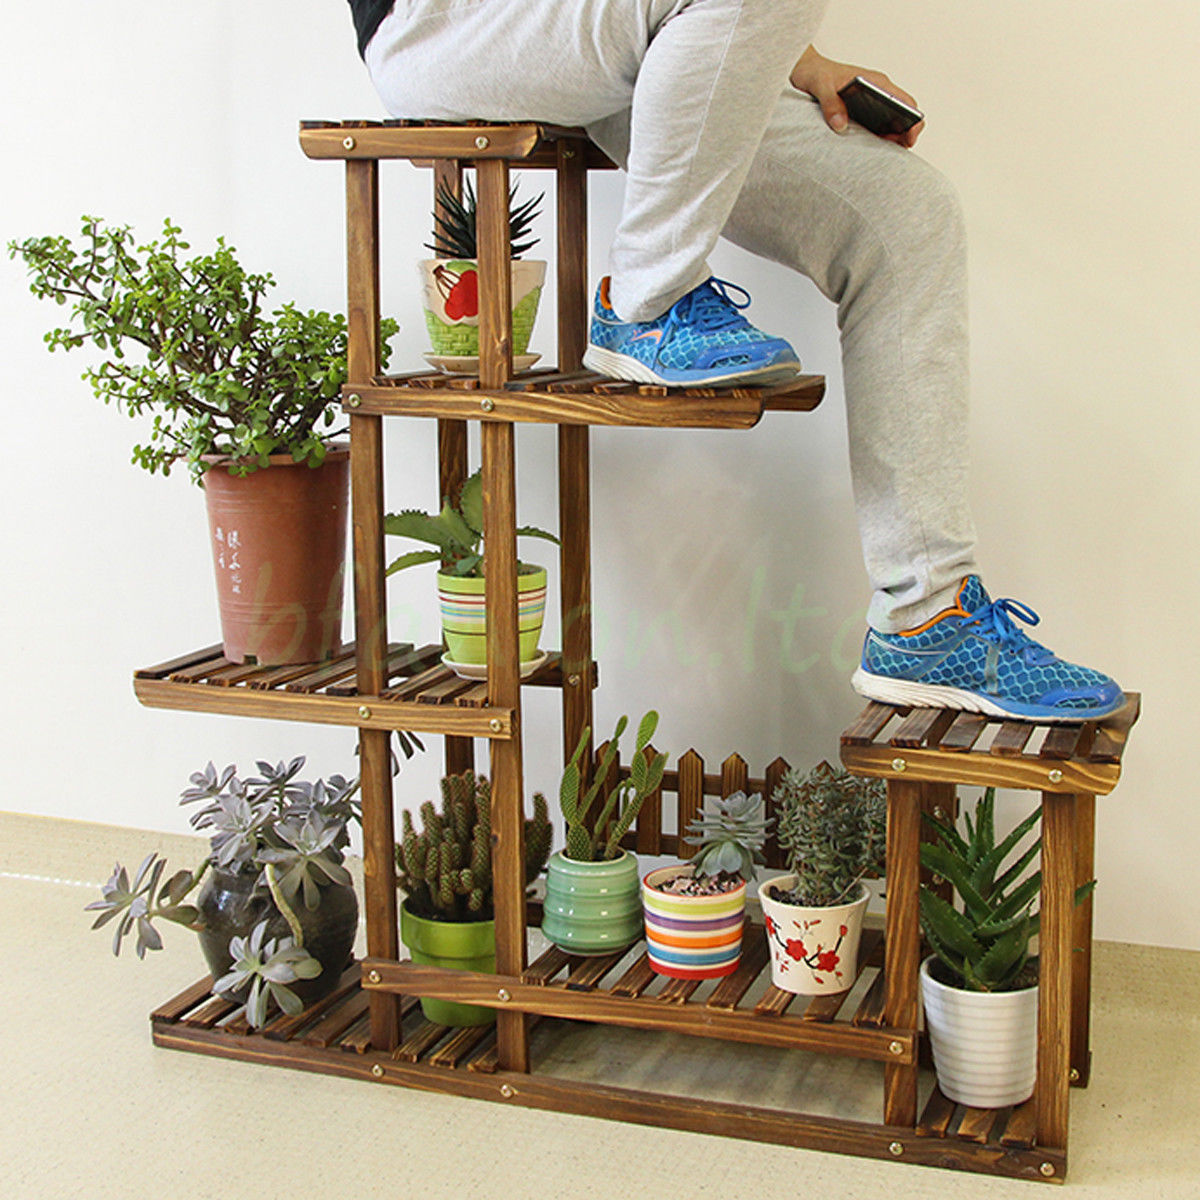 Plant Shelving Indoor Wooden Plant Flower Pot Display Stand Wood Shelf Storage